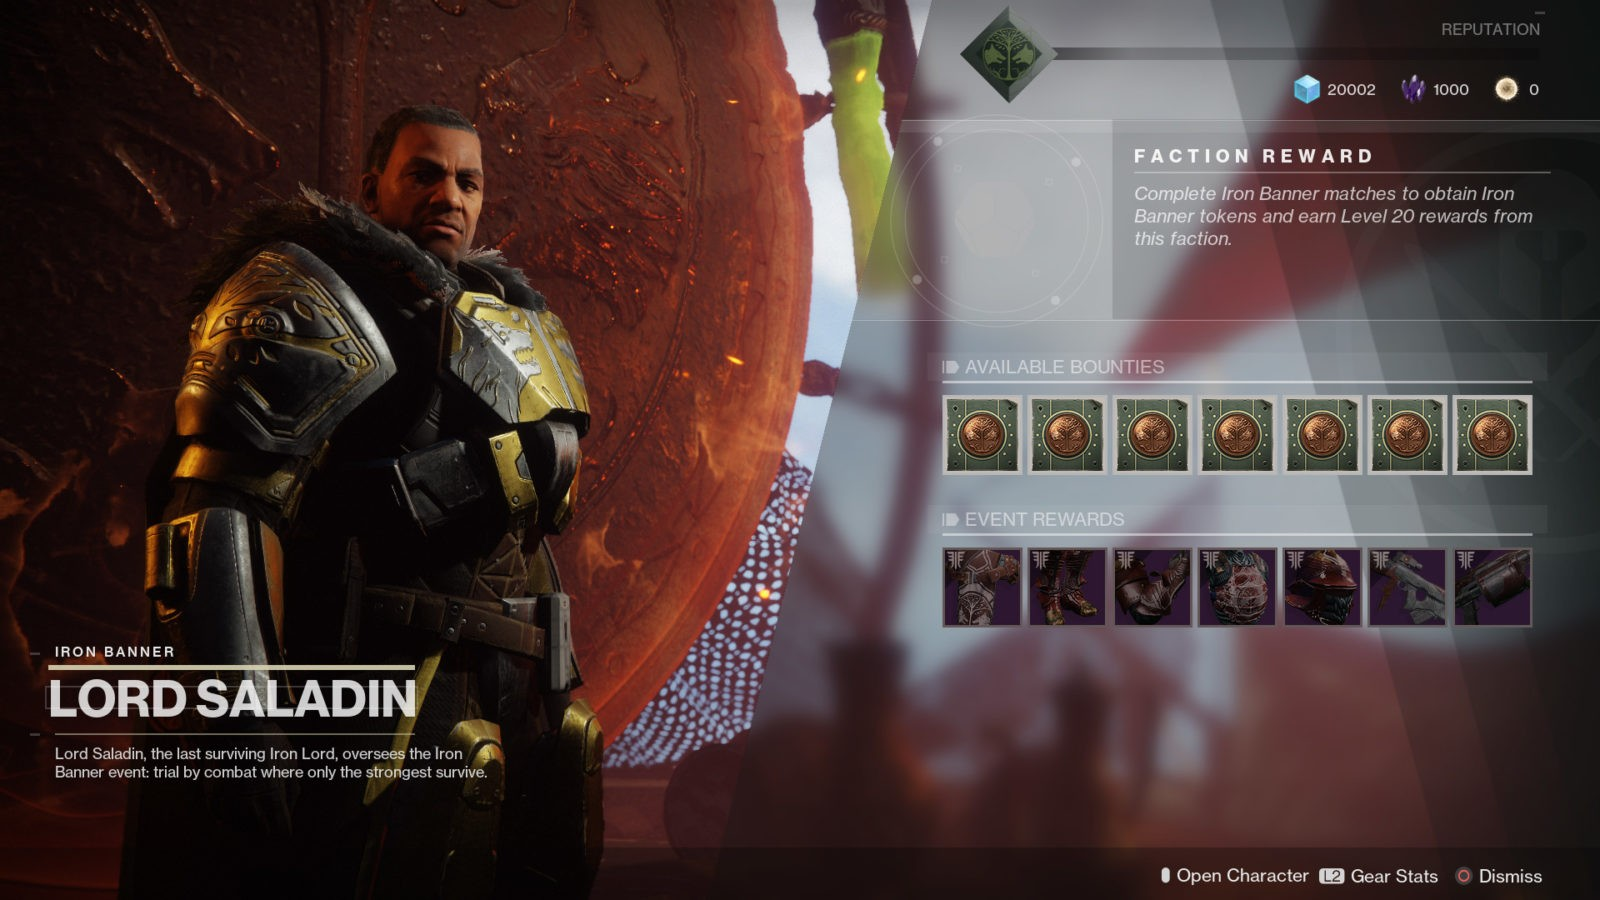 Iron Banner Returns to Destiny 2: Check Out the New Gear